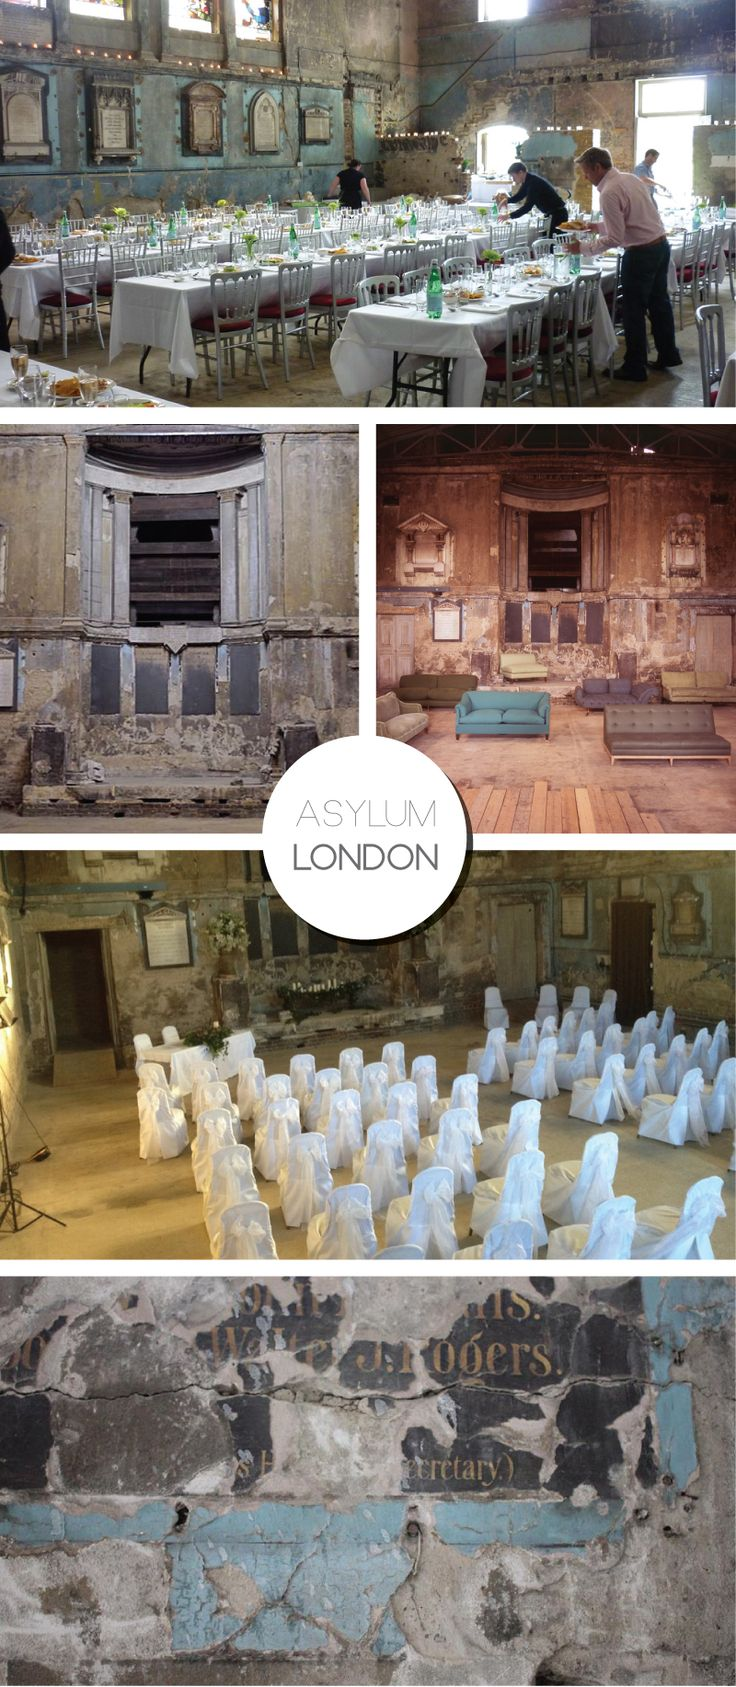 Asylum Wedding Venue | London on Bride Bubble - Wedding & Style Blog.